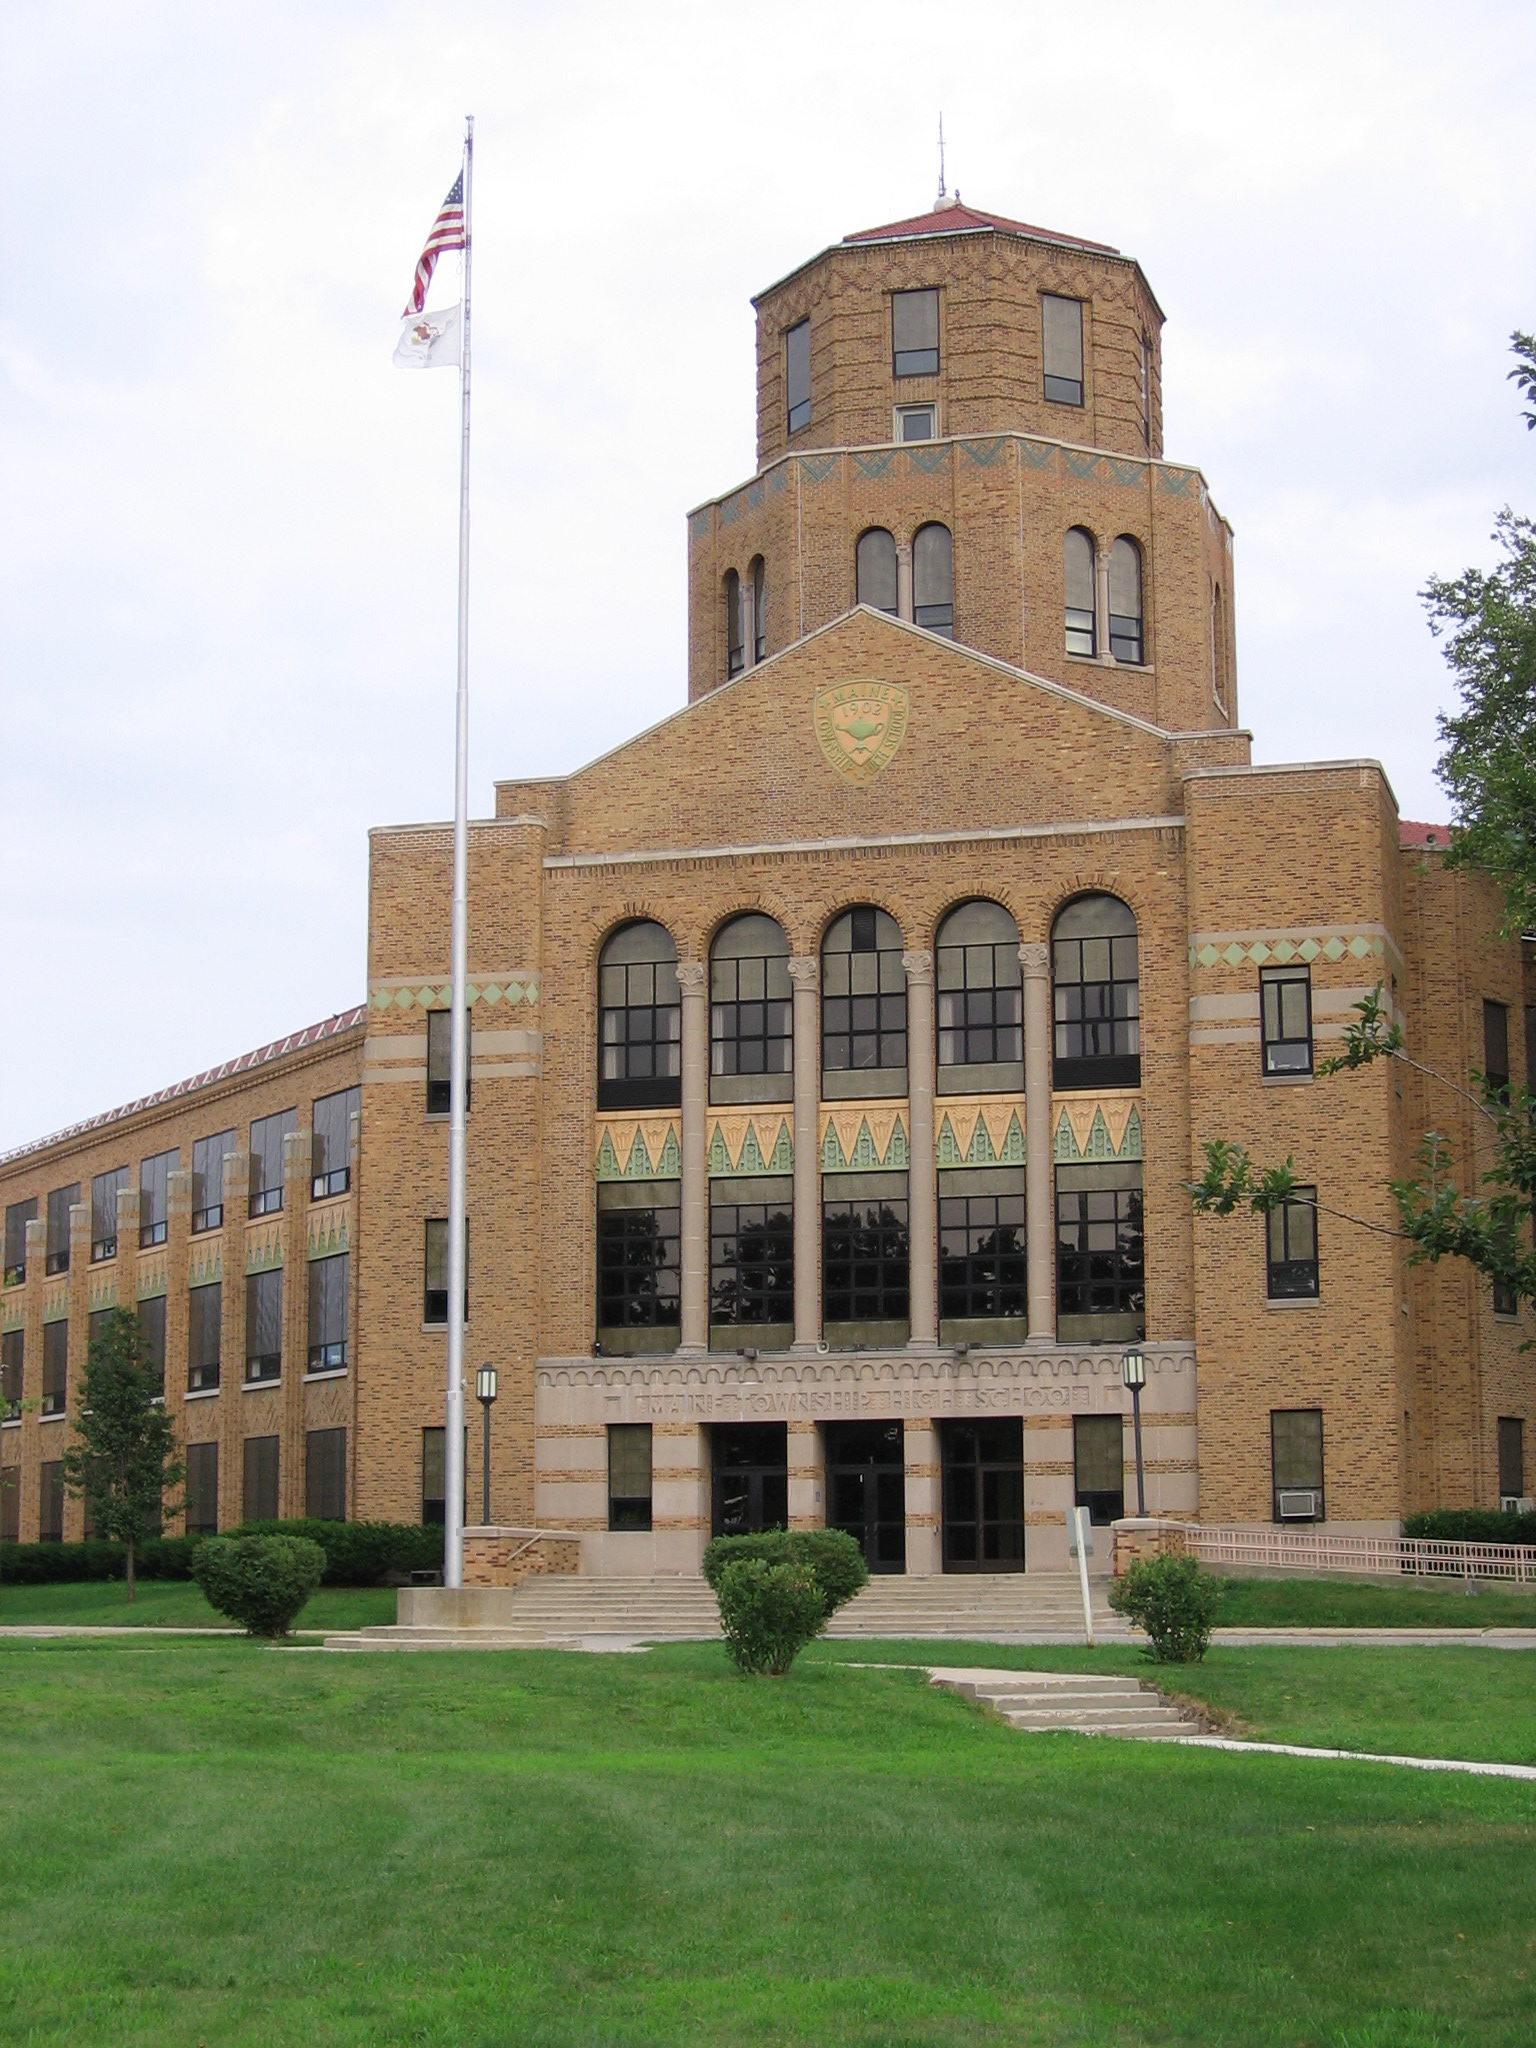 Maine East High School - Wikipedia